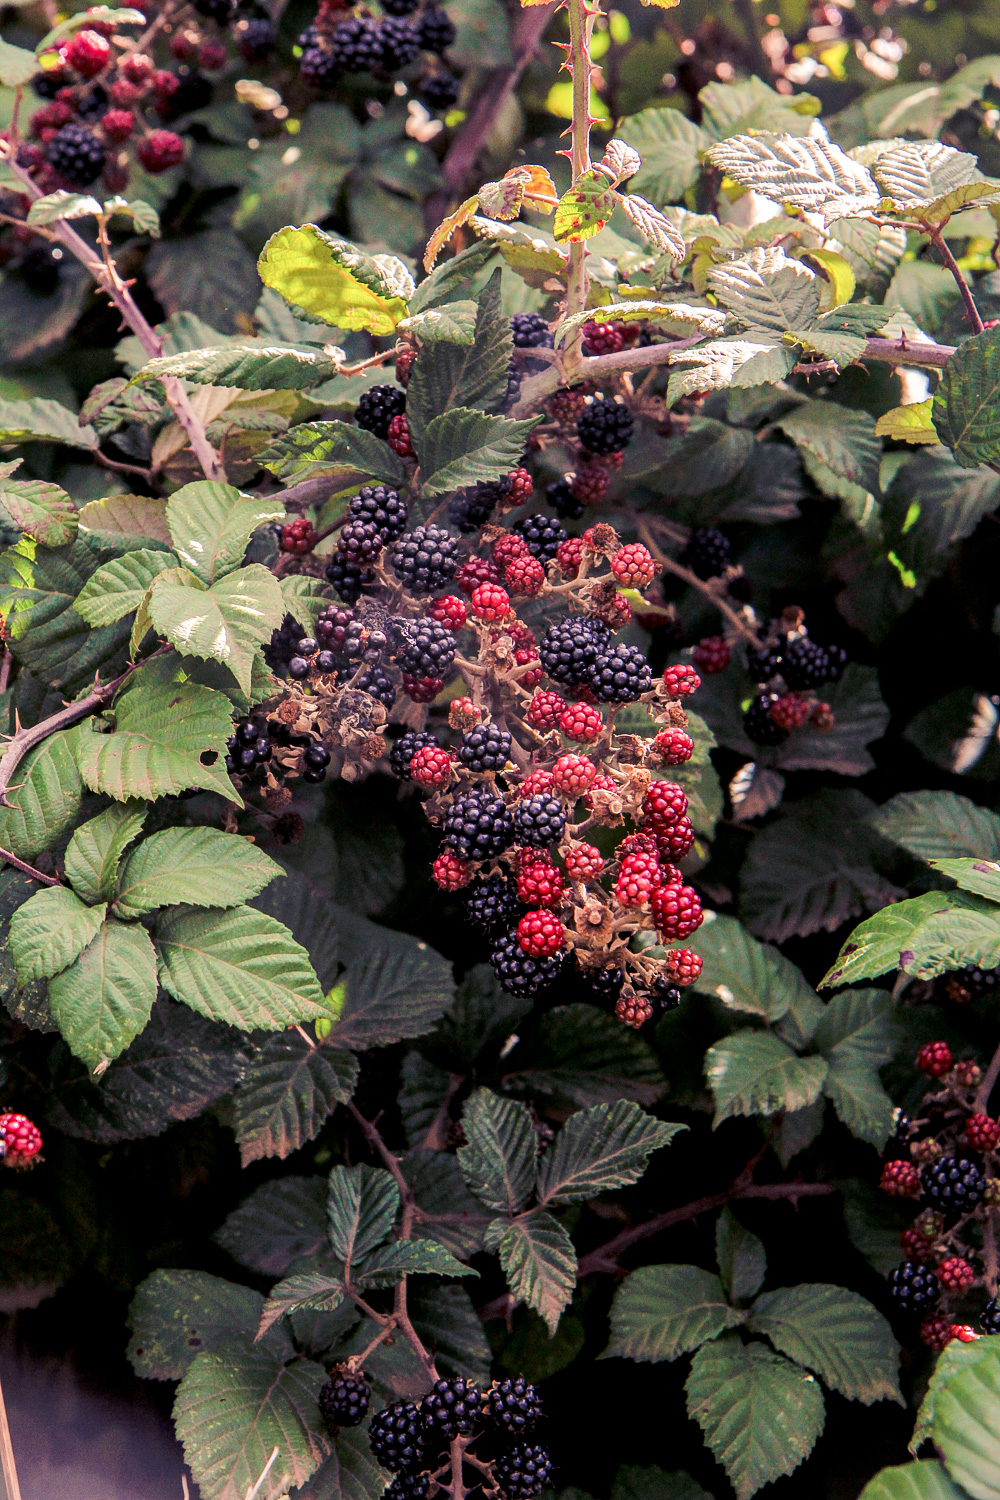 Blackberrys in a bush